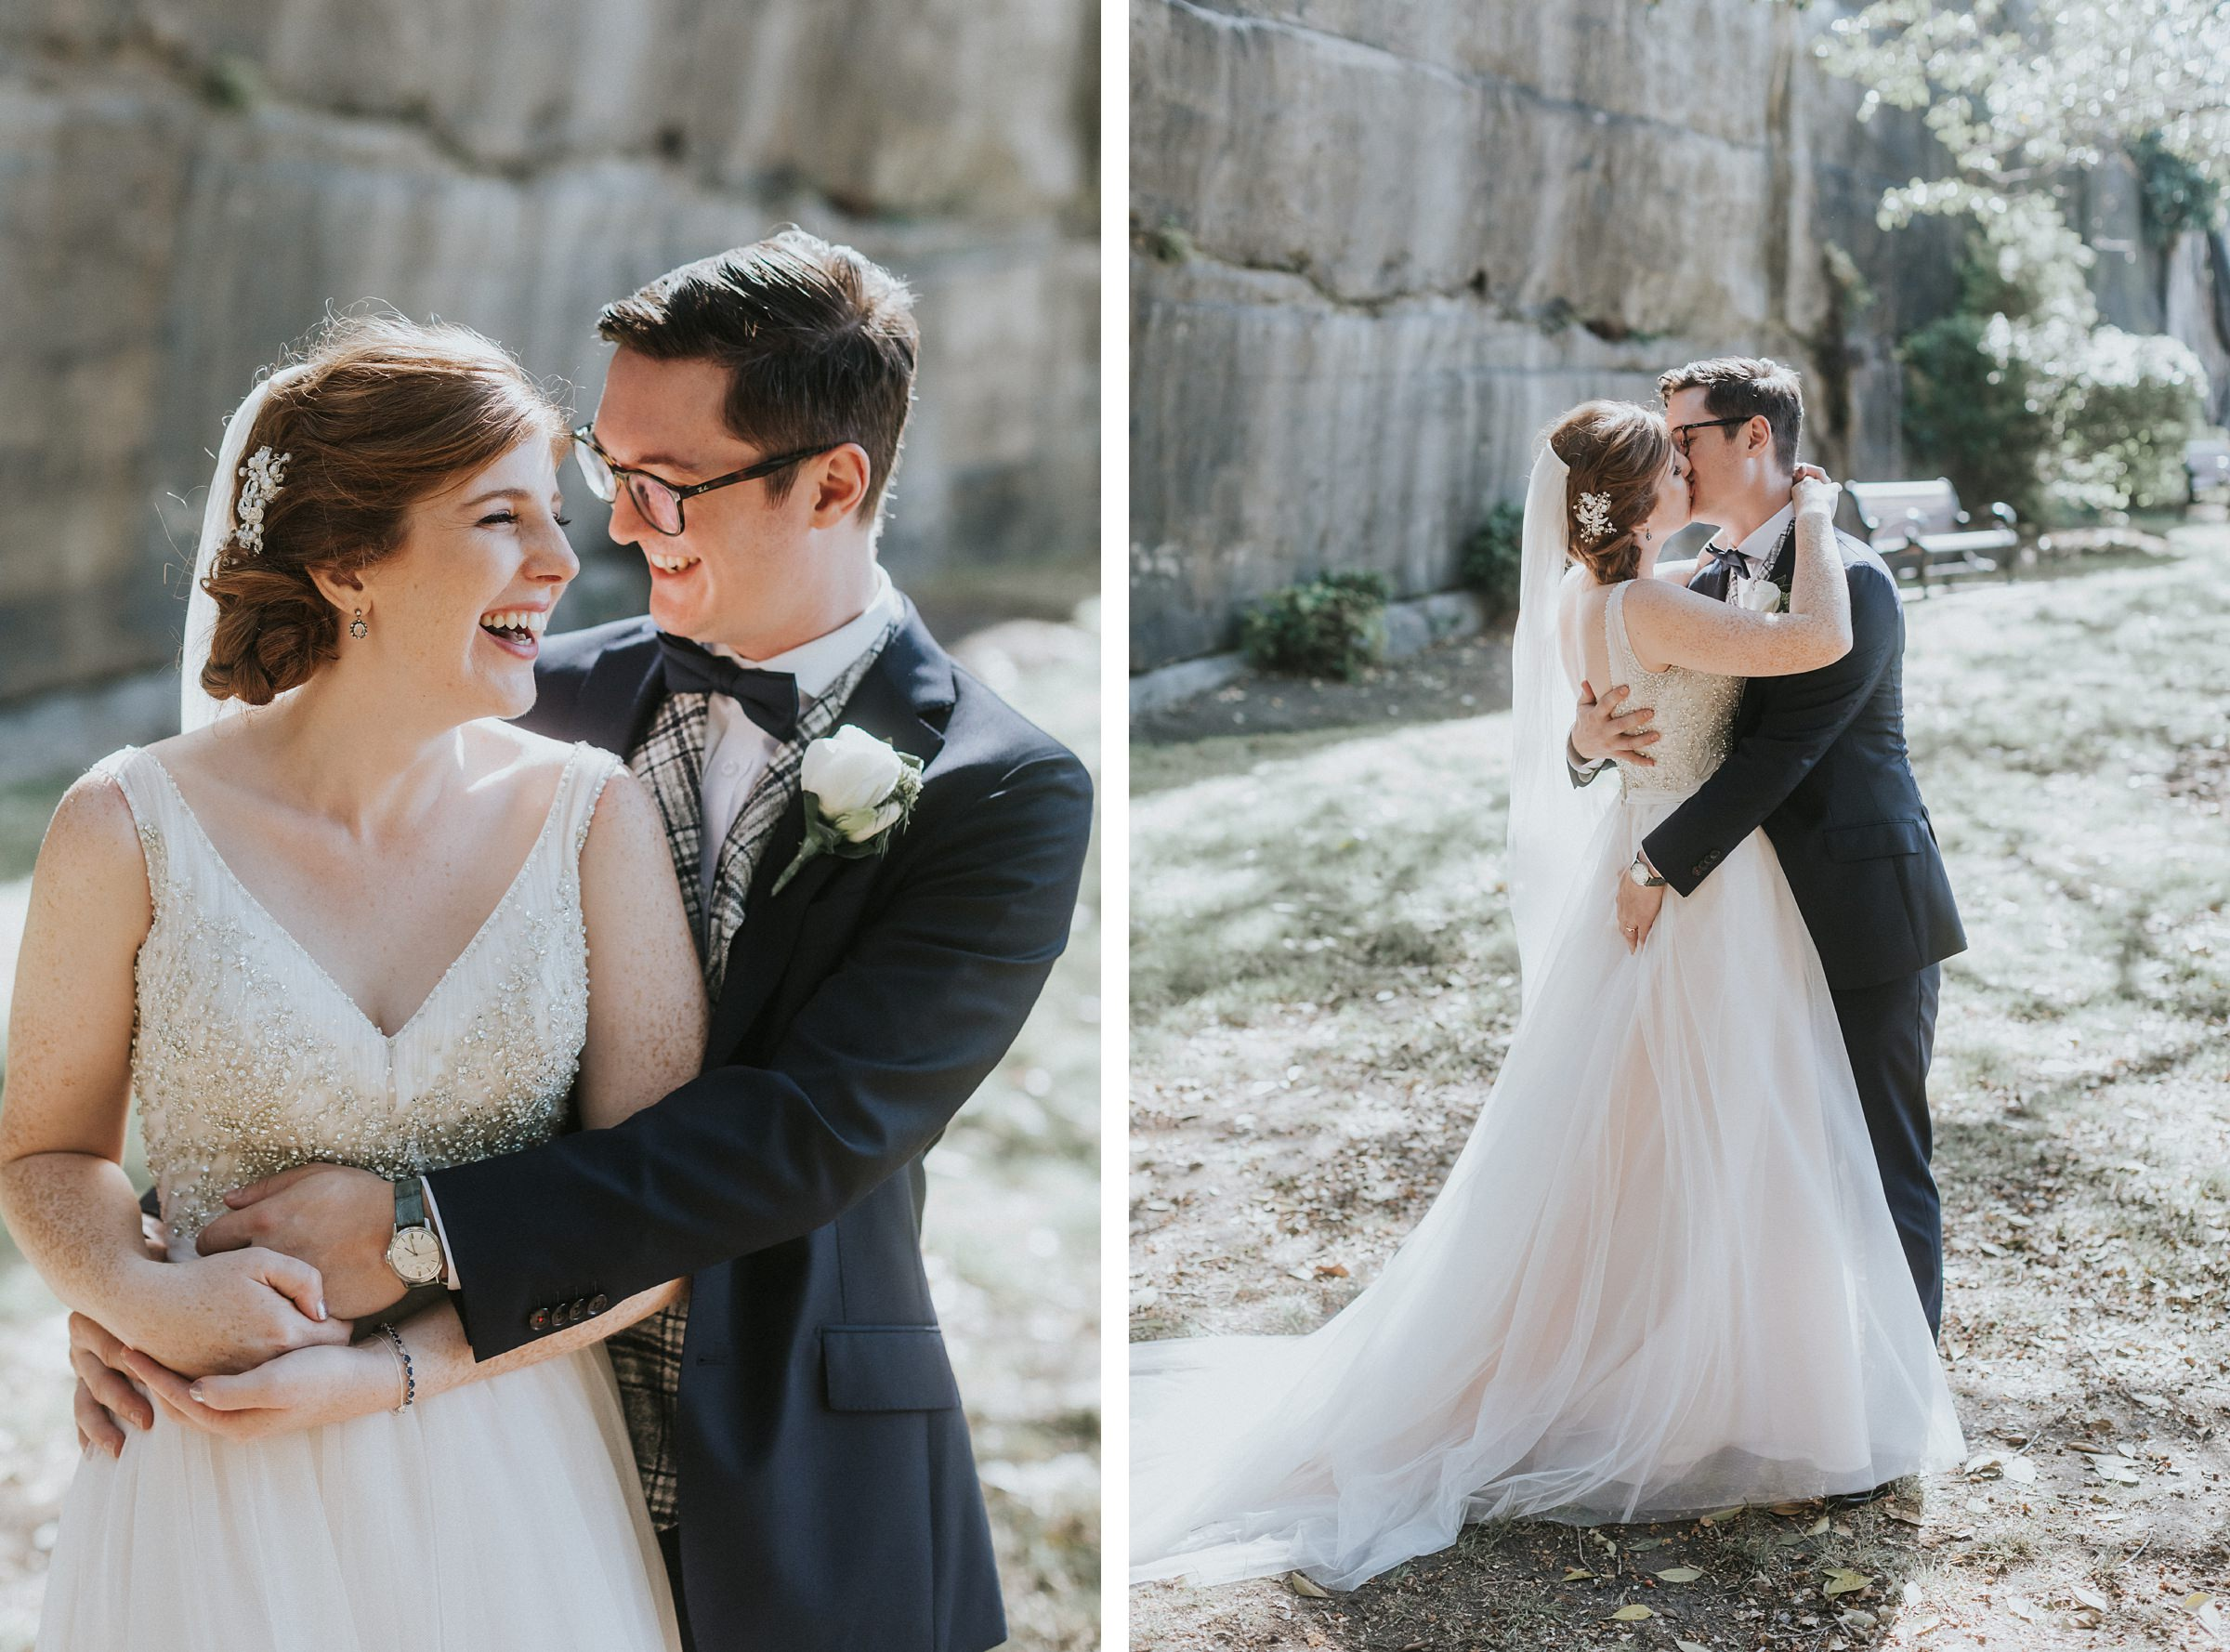 genuine wedding photos capture the emotion at a sydney wedding